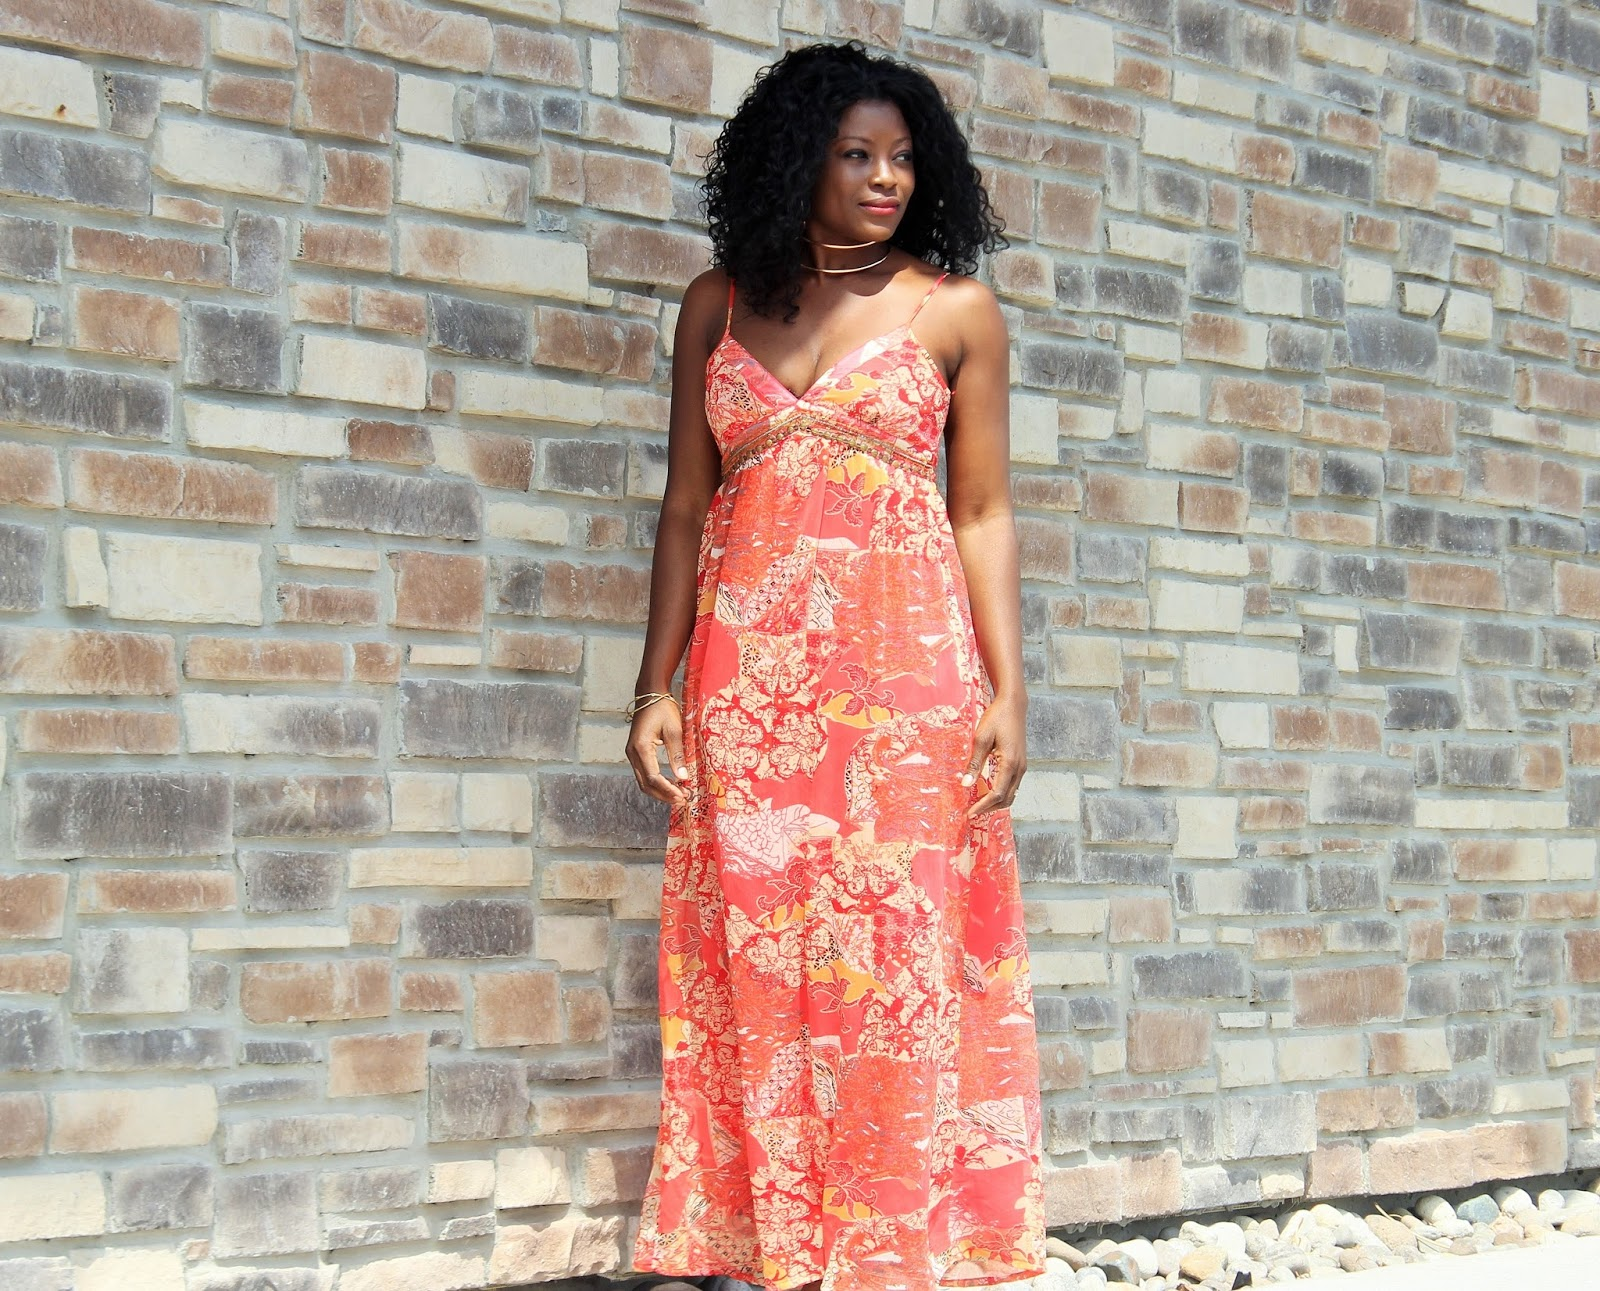 FOREVER 21 MAXI DRESS: THE CHOSEN ONE FOR A SUMMER STAYCATION AT ALOFT